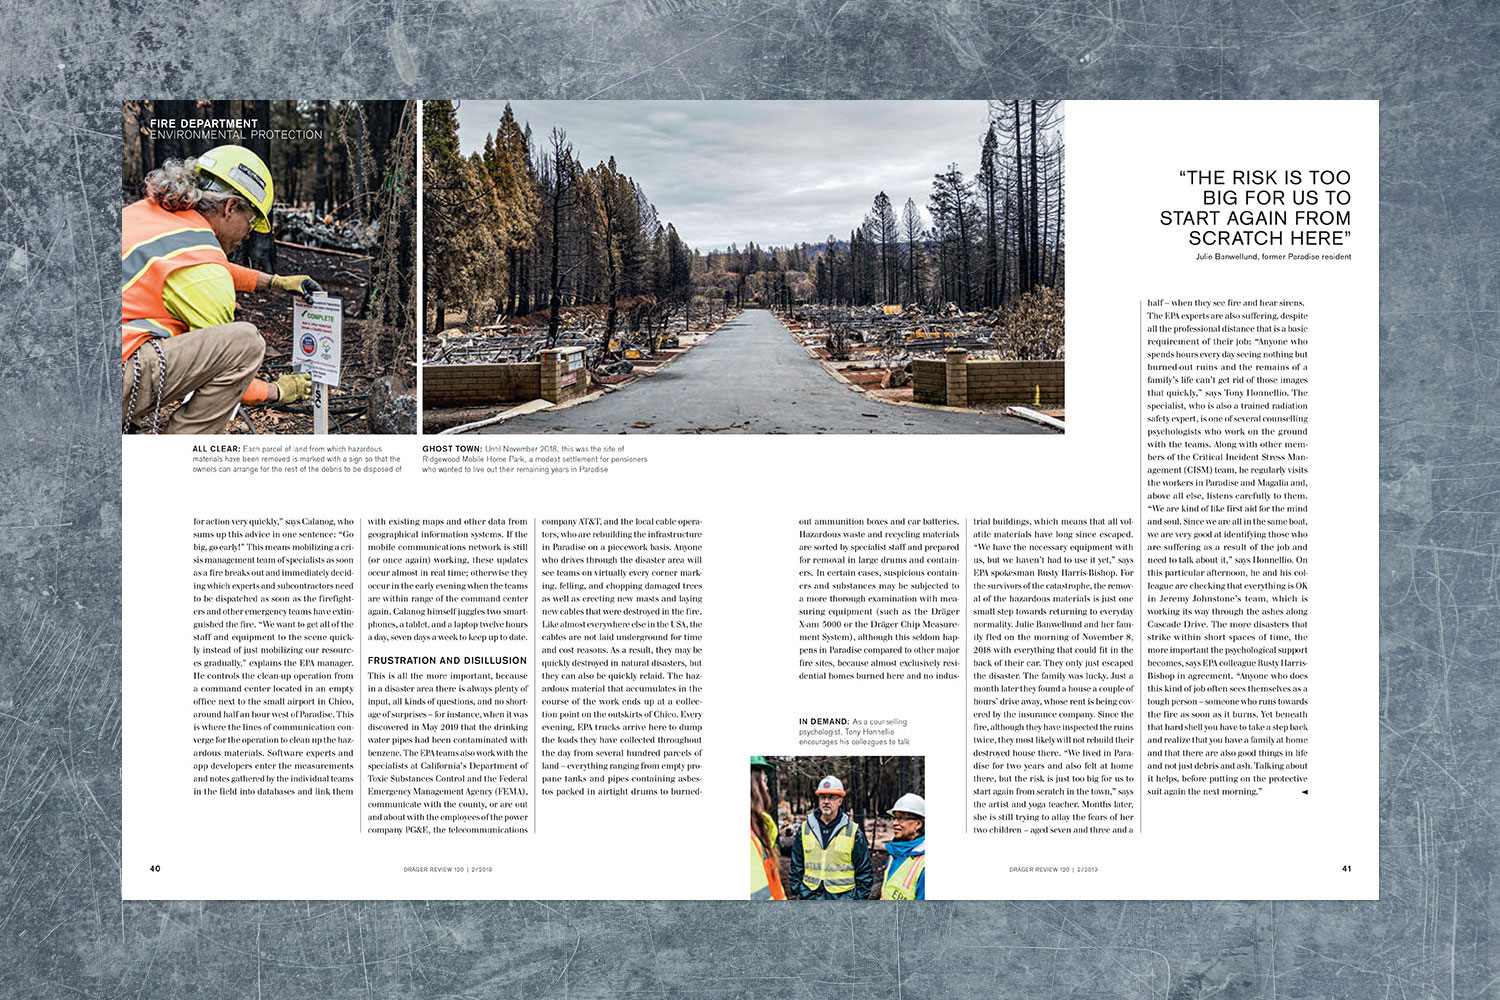 PATRICK STRATTNER PHOTOGRAPHY | TEAR SHEETS | EPA work after the Camp Fire / Dräger